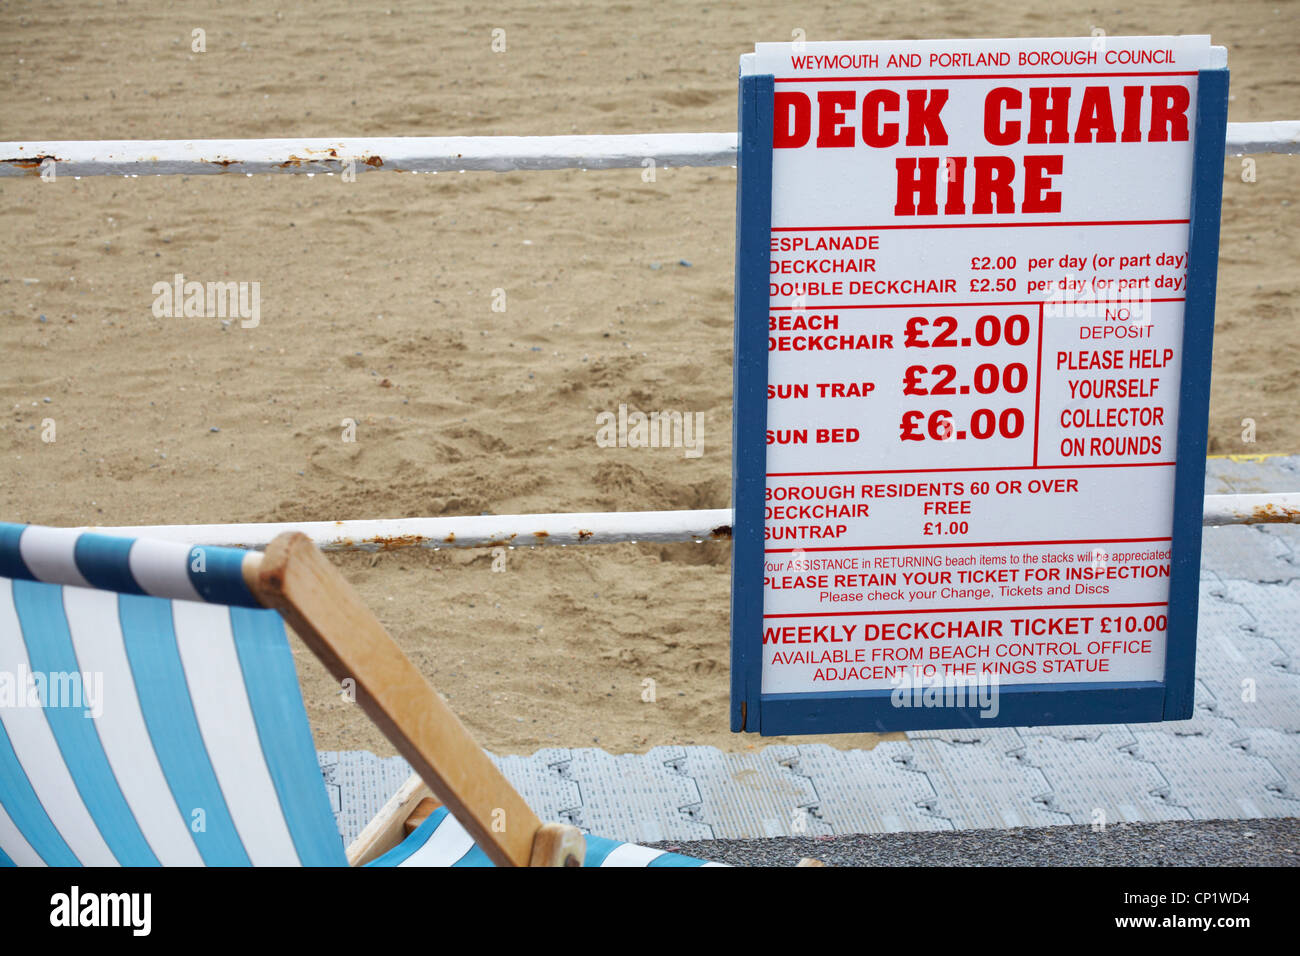 Deck chair hire charges at Weymouth beach in April - Stock Image